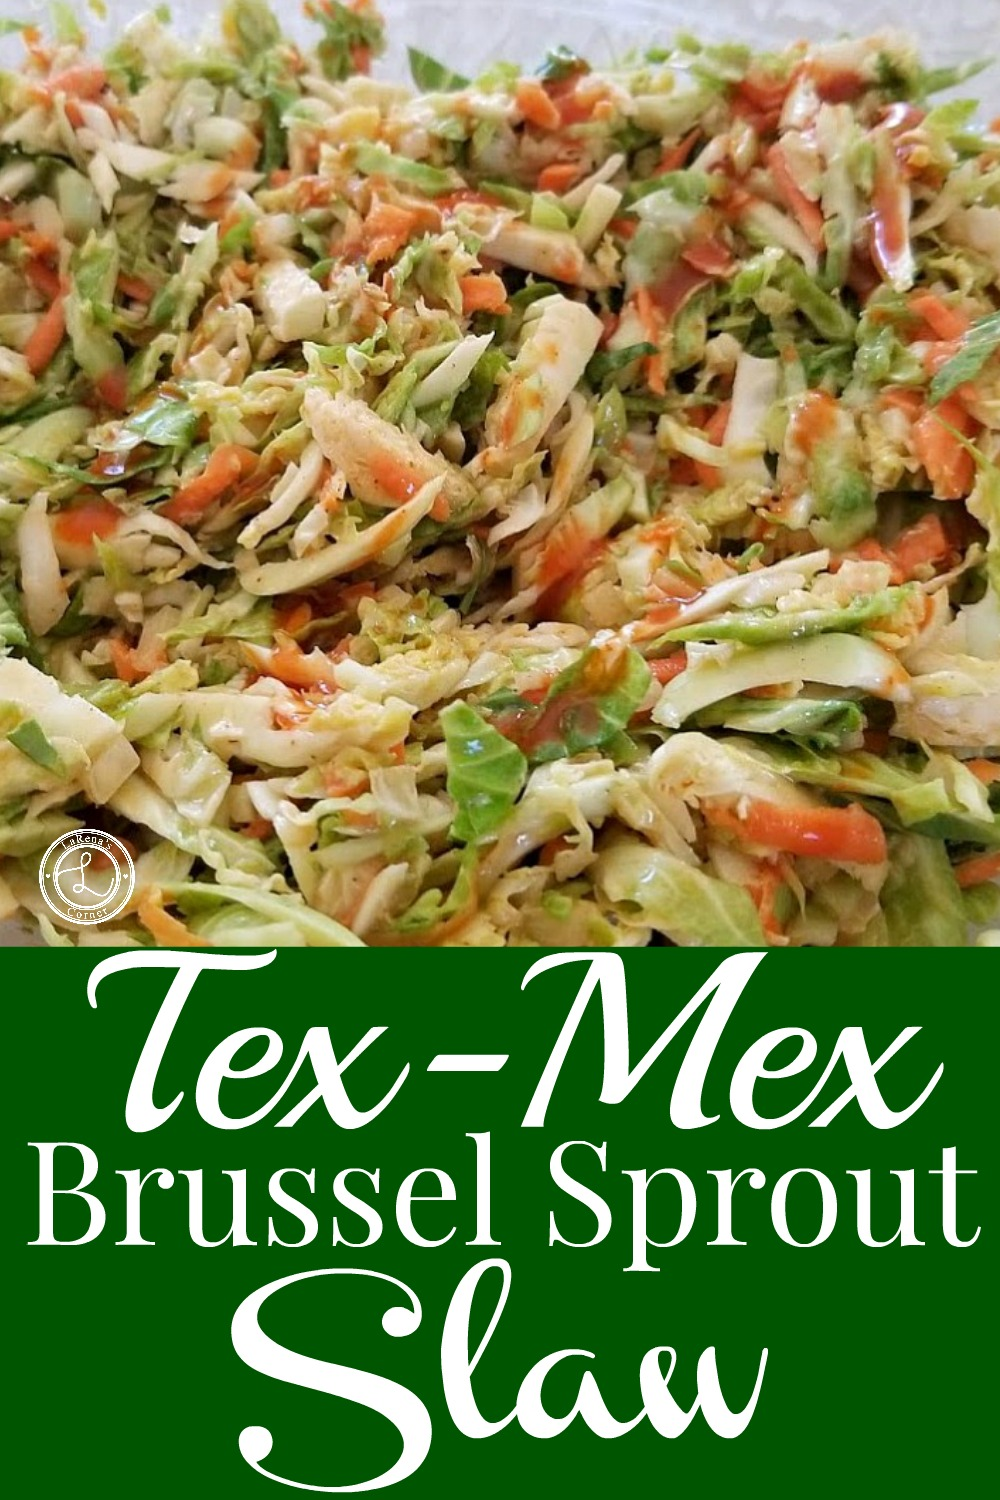 Brussel Sprout Slaw